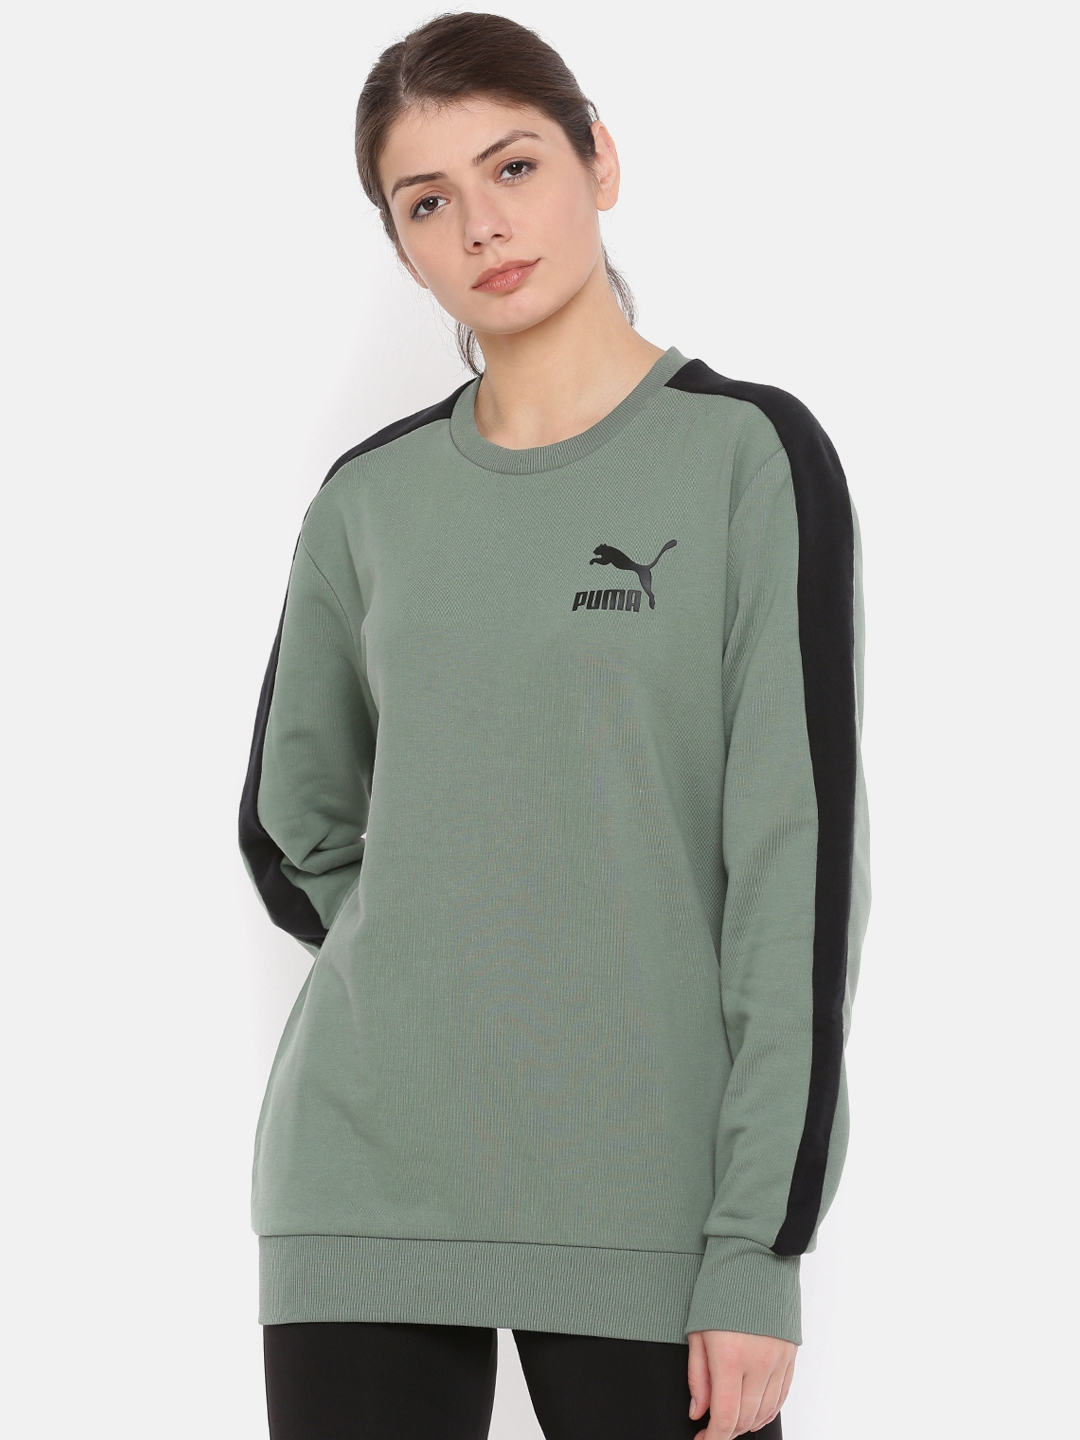 0f074413ce37 Buy Puma Women Green   Black Solid Sweatshirt - Sweatshirts for ...